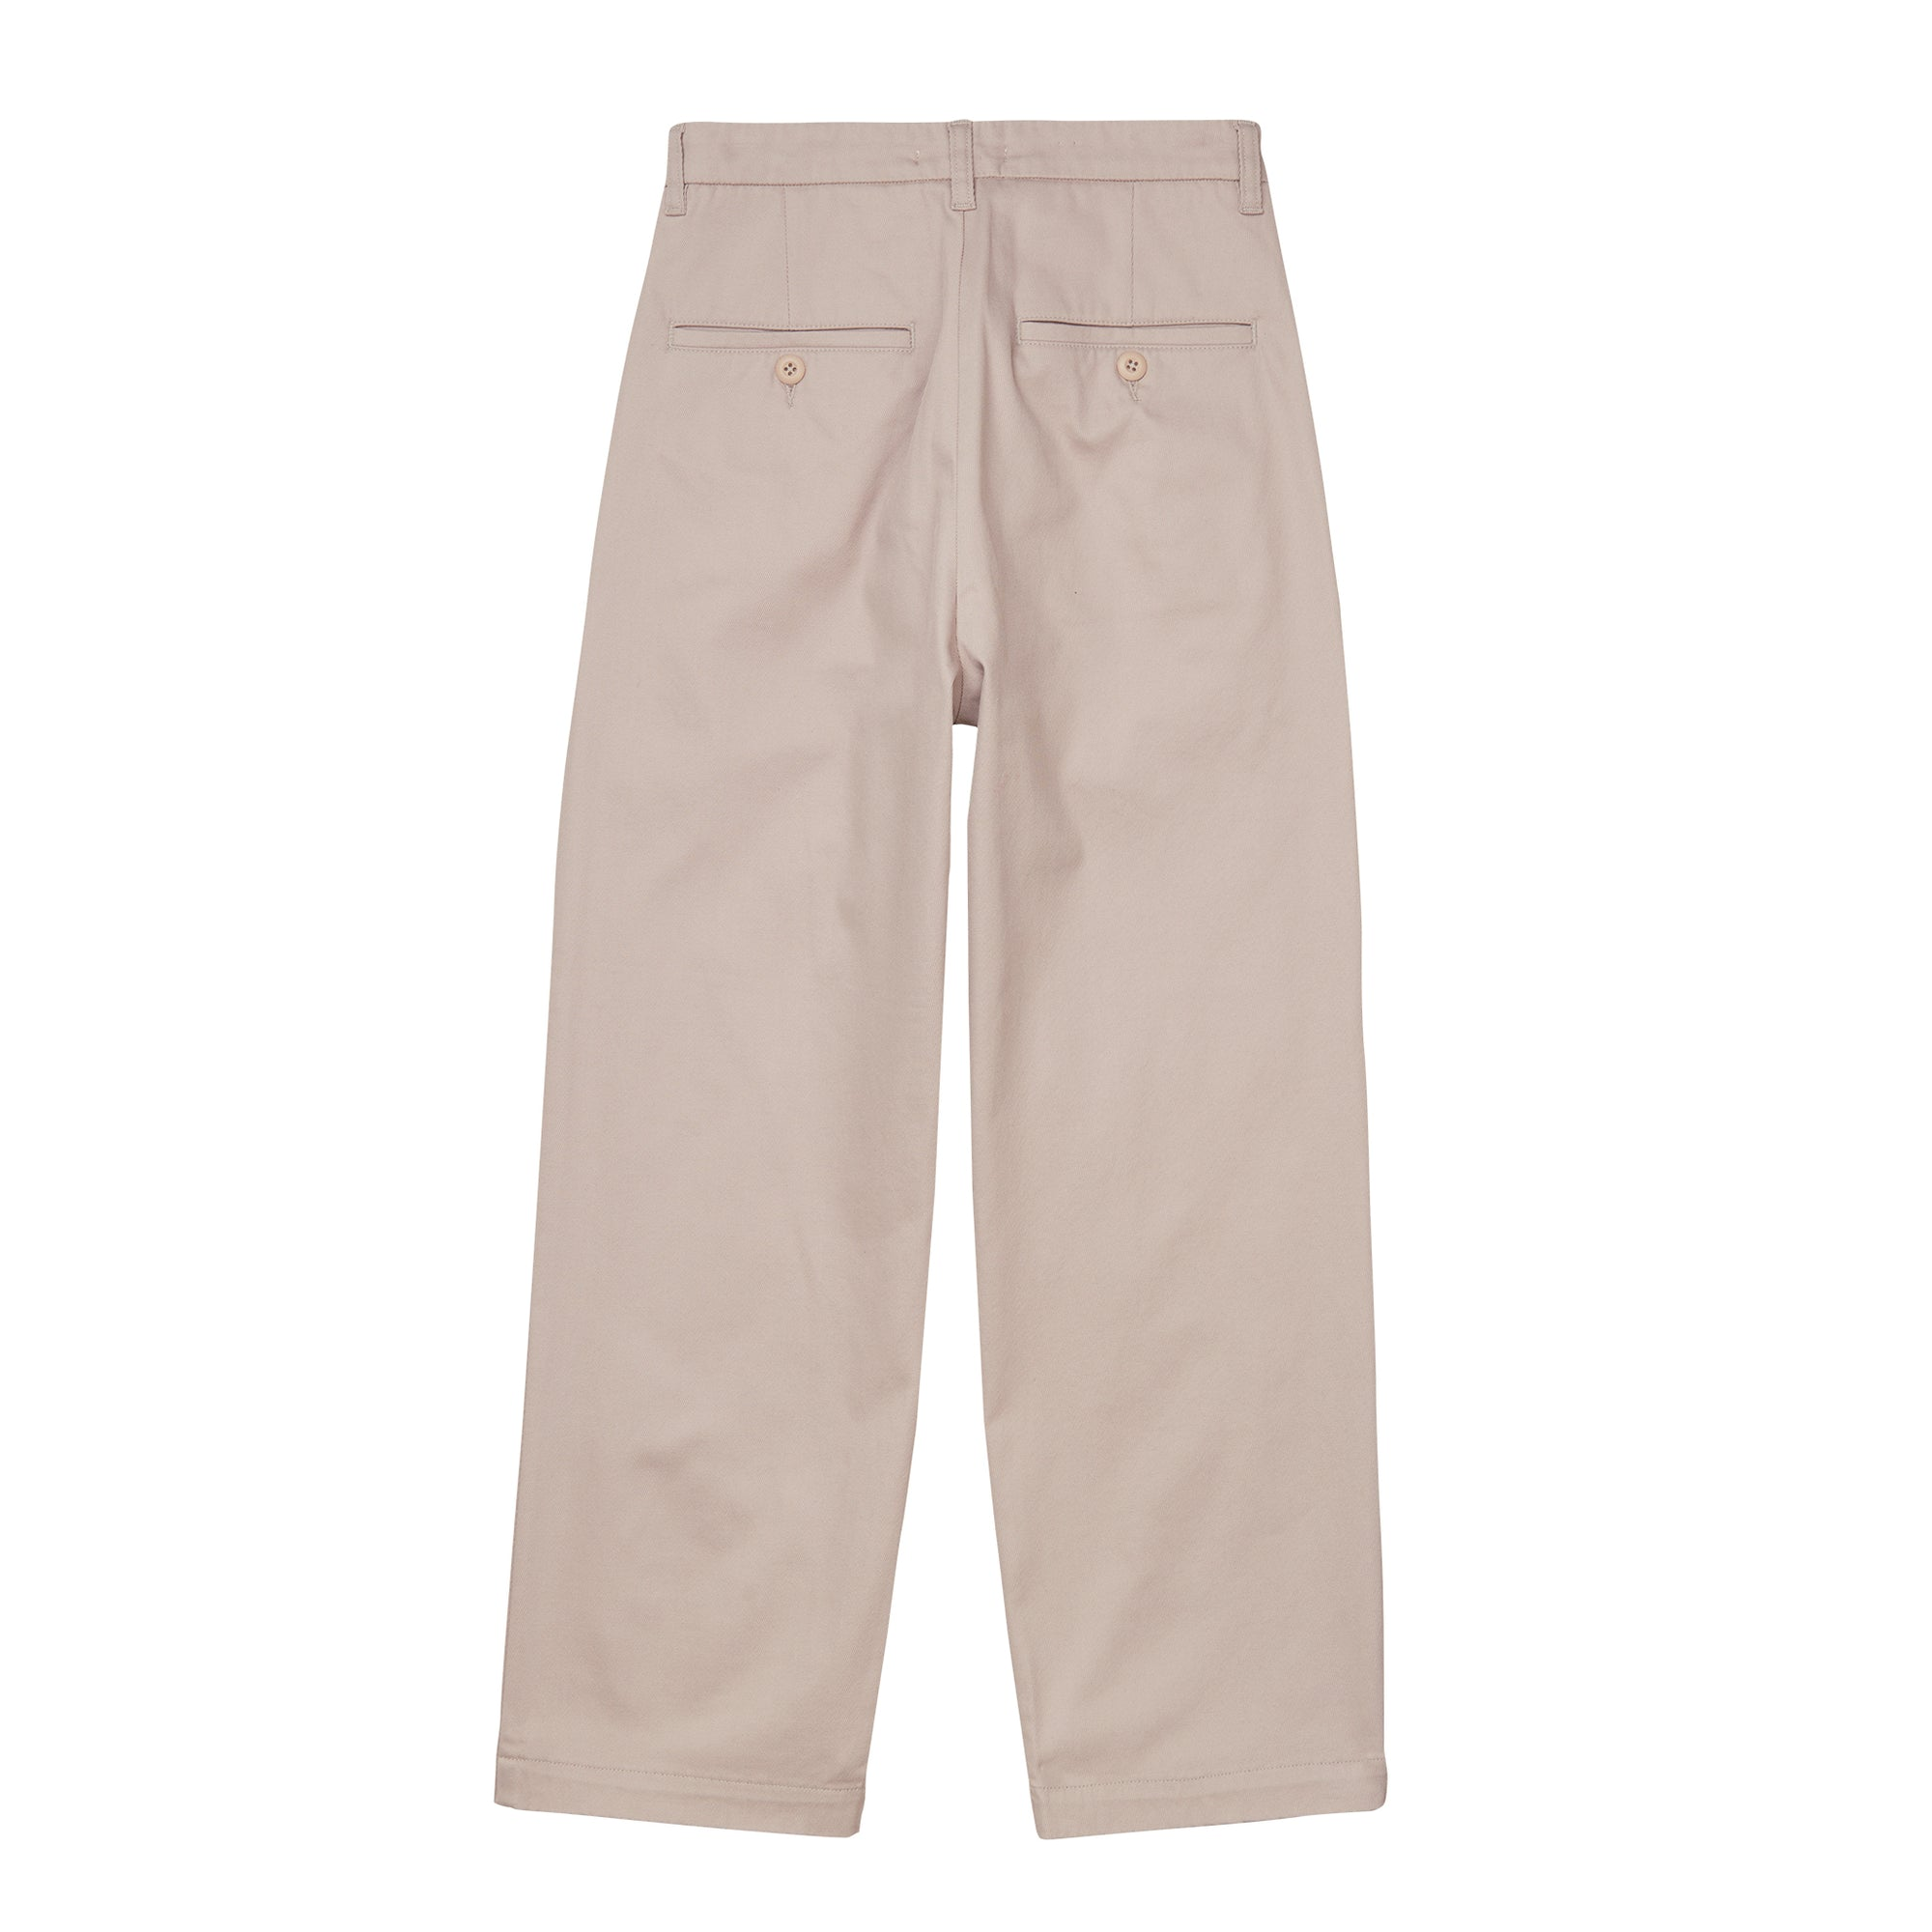 Carhartt WIP Womens Cara Pant: Glaze Rinsed - The Union Project